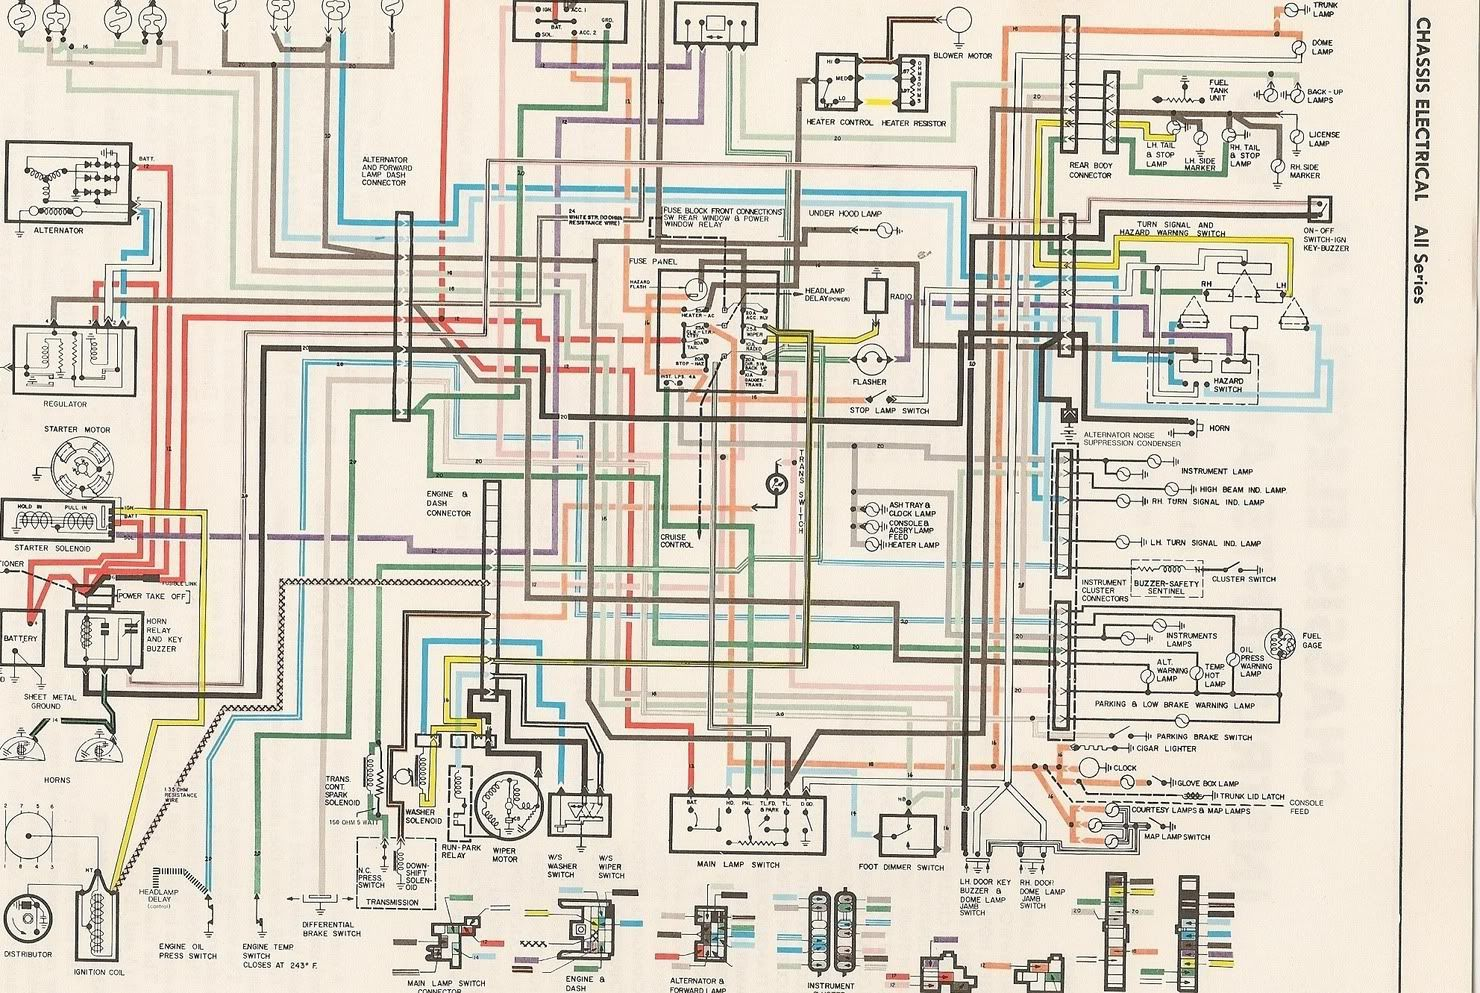 1970 Mobile Home Wiring Diagram Bose Amp Manual Pinto Misc Pinterest Motorhome Wire